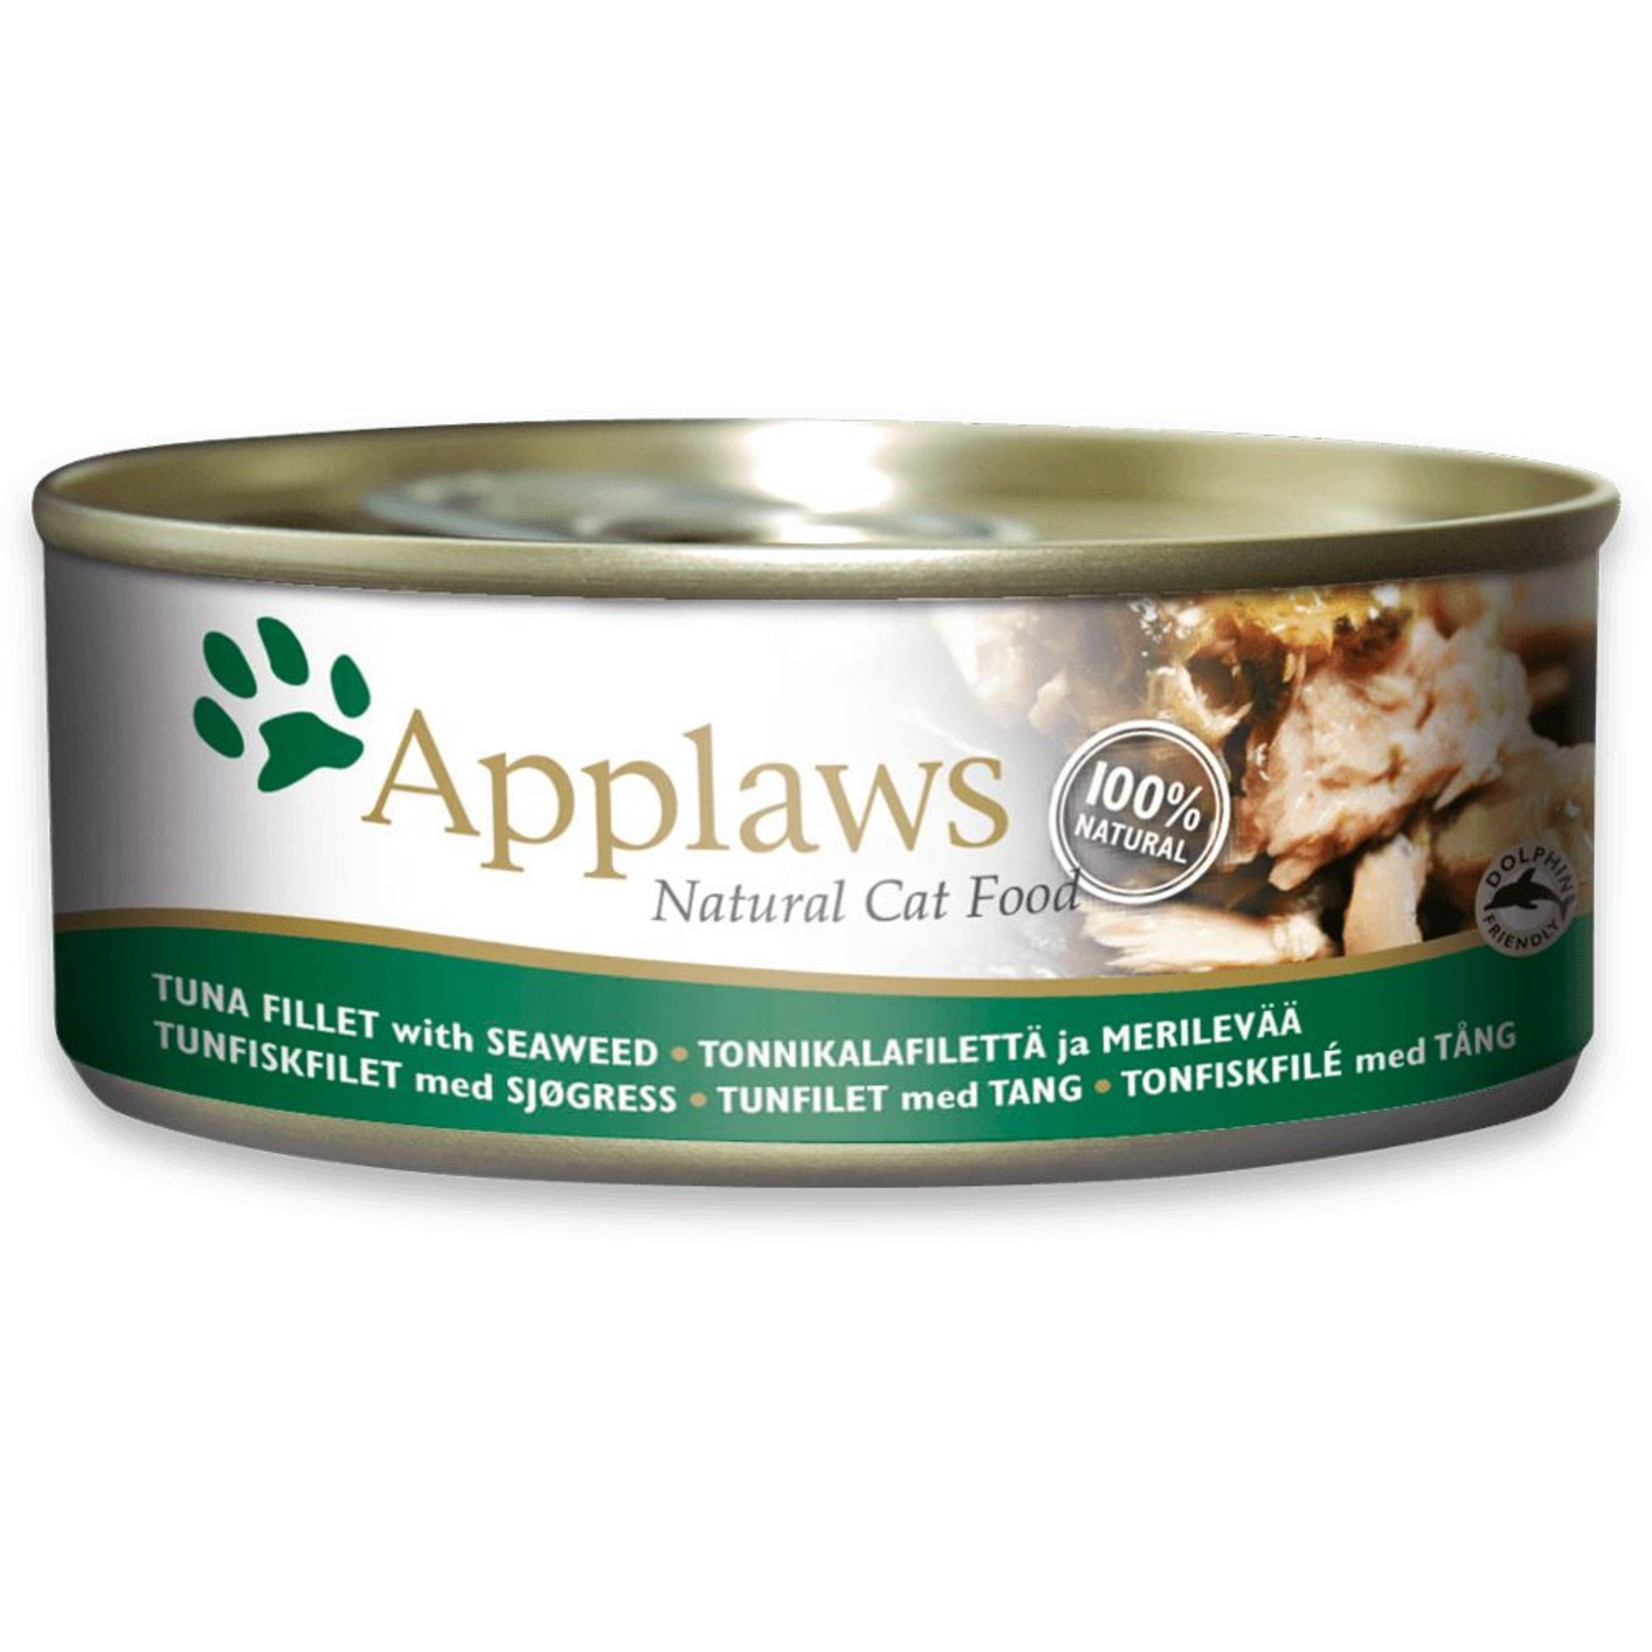 Applaws Cat Wet Food Tuna Fillet with Seaweed in Jelly, 70g